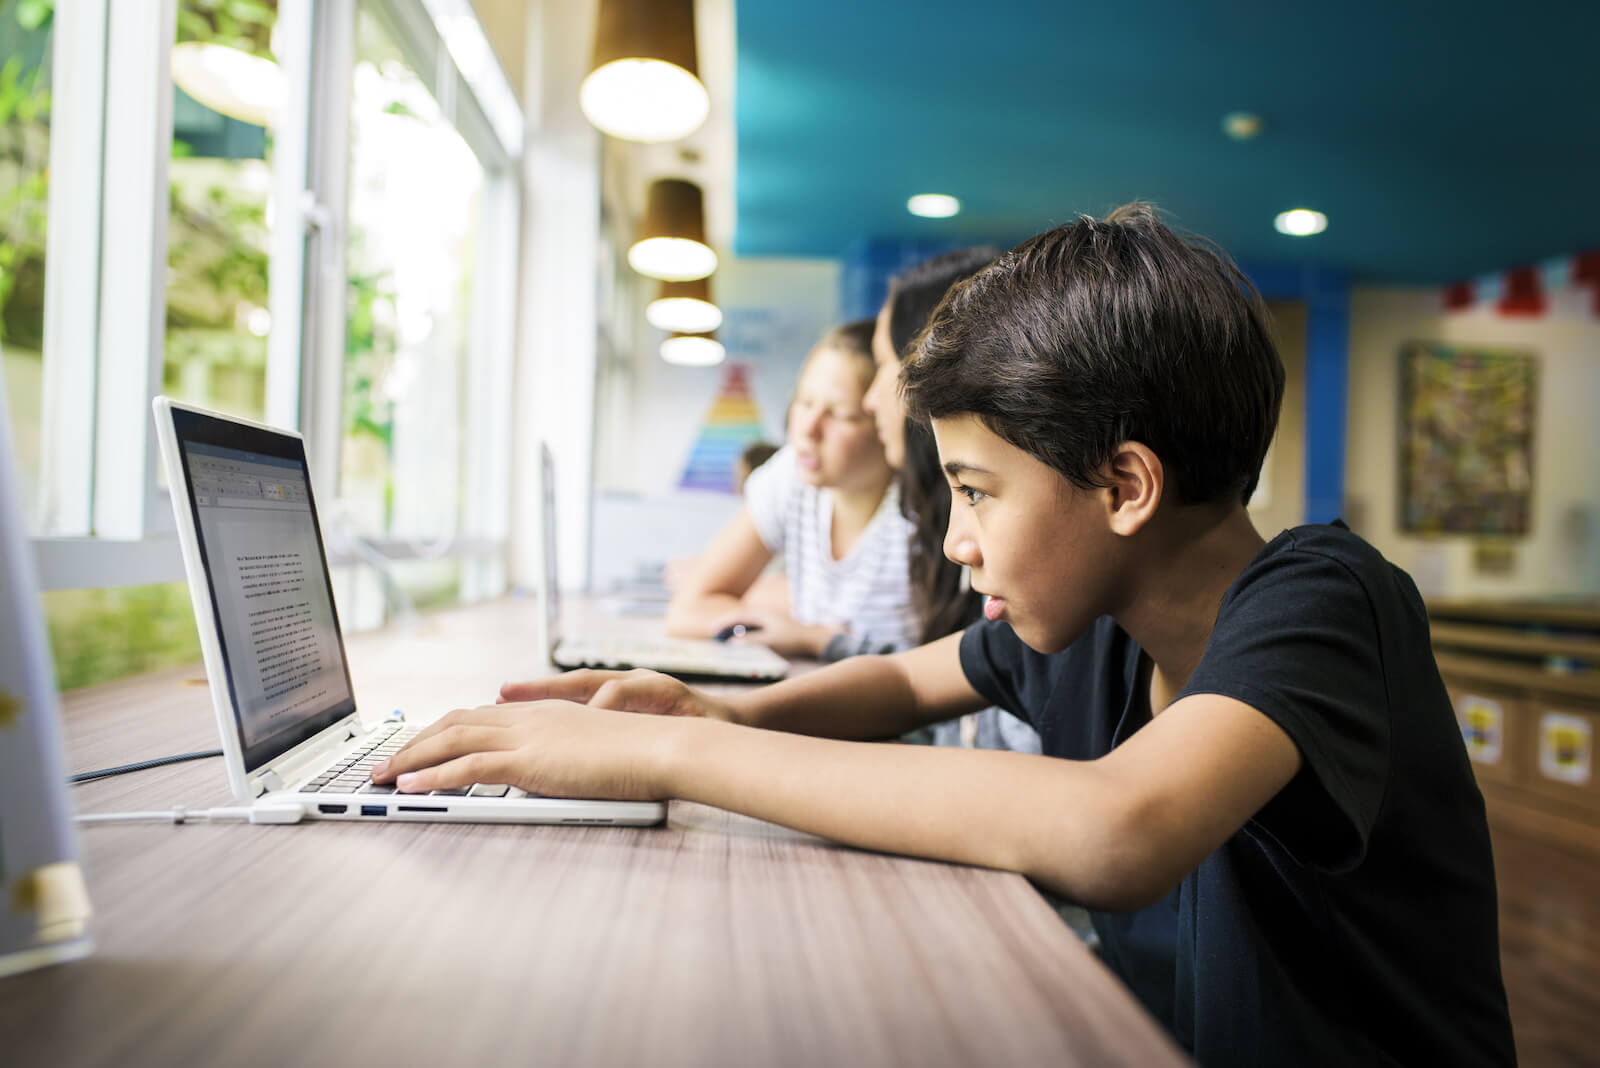 NLP in education: young students using laptops